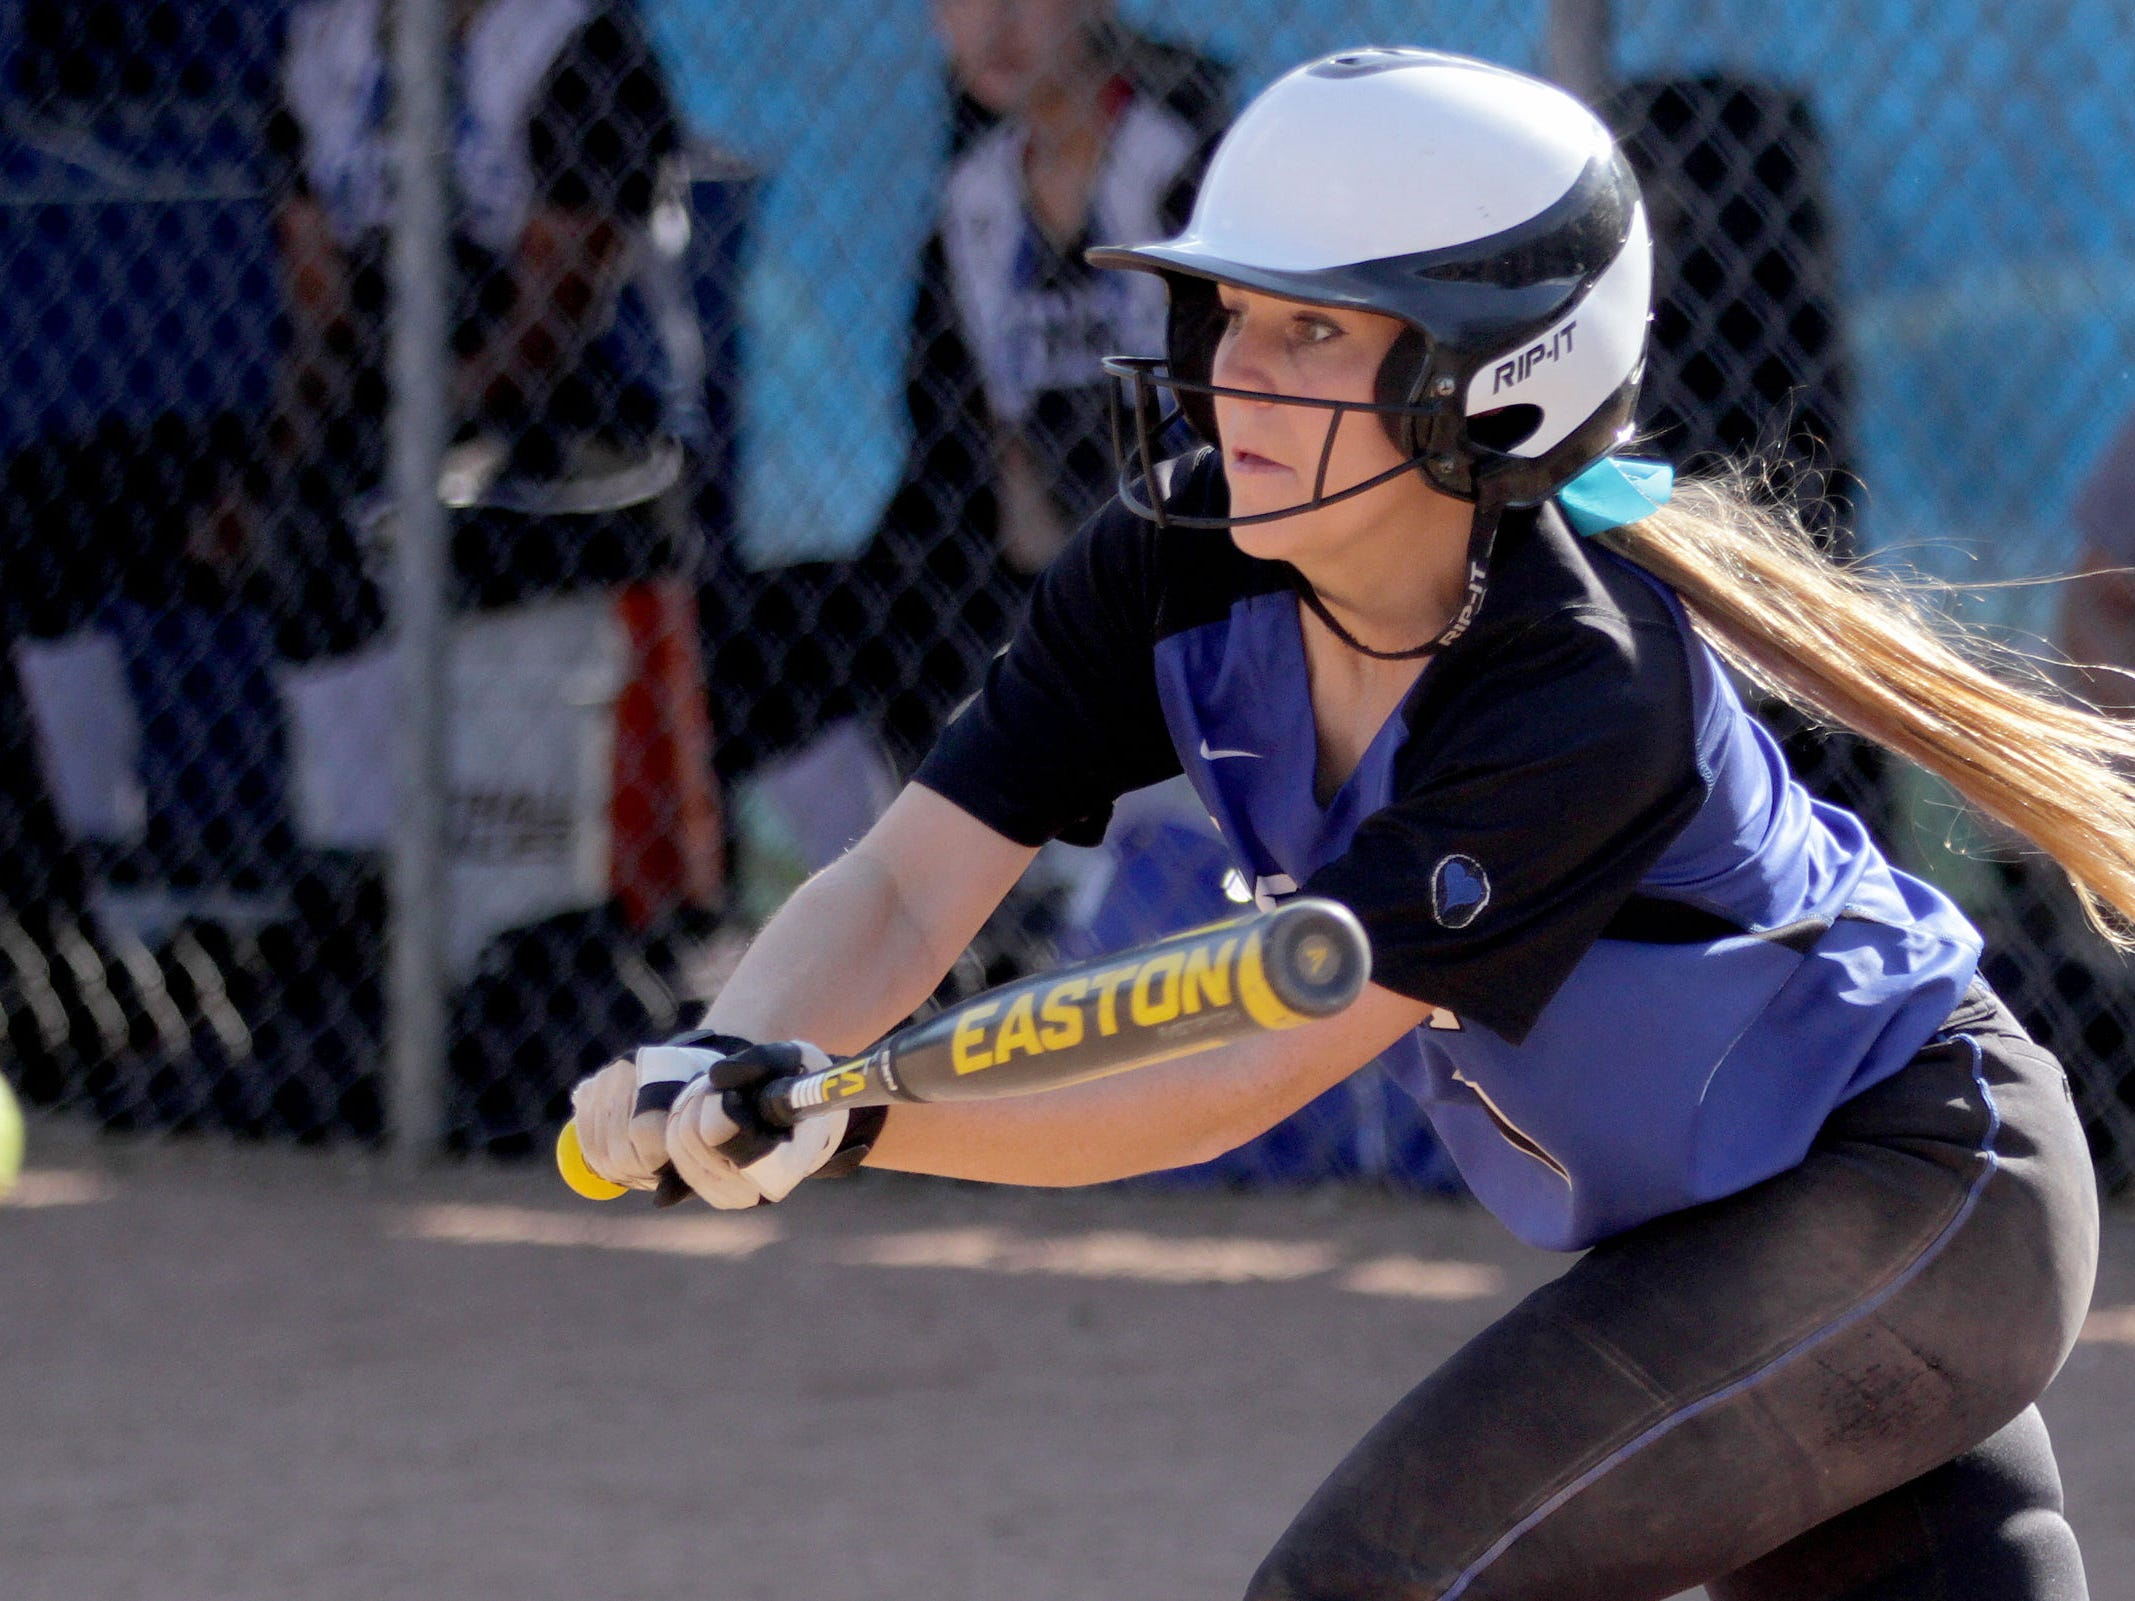 Gresham's Maddy Lindhorst (1) in the Gresham vs. McNary softball game, in the first round of the OSAA class 6A state playoffs, at McNary High School in Keizer on Monday, May 25, 2015. McNary won the game 11-7.